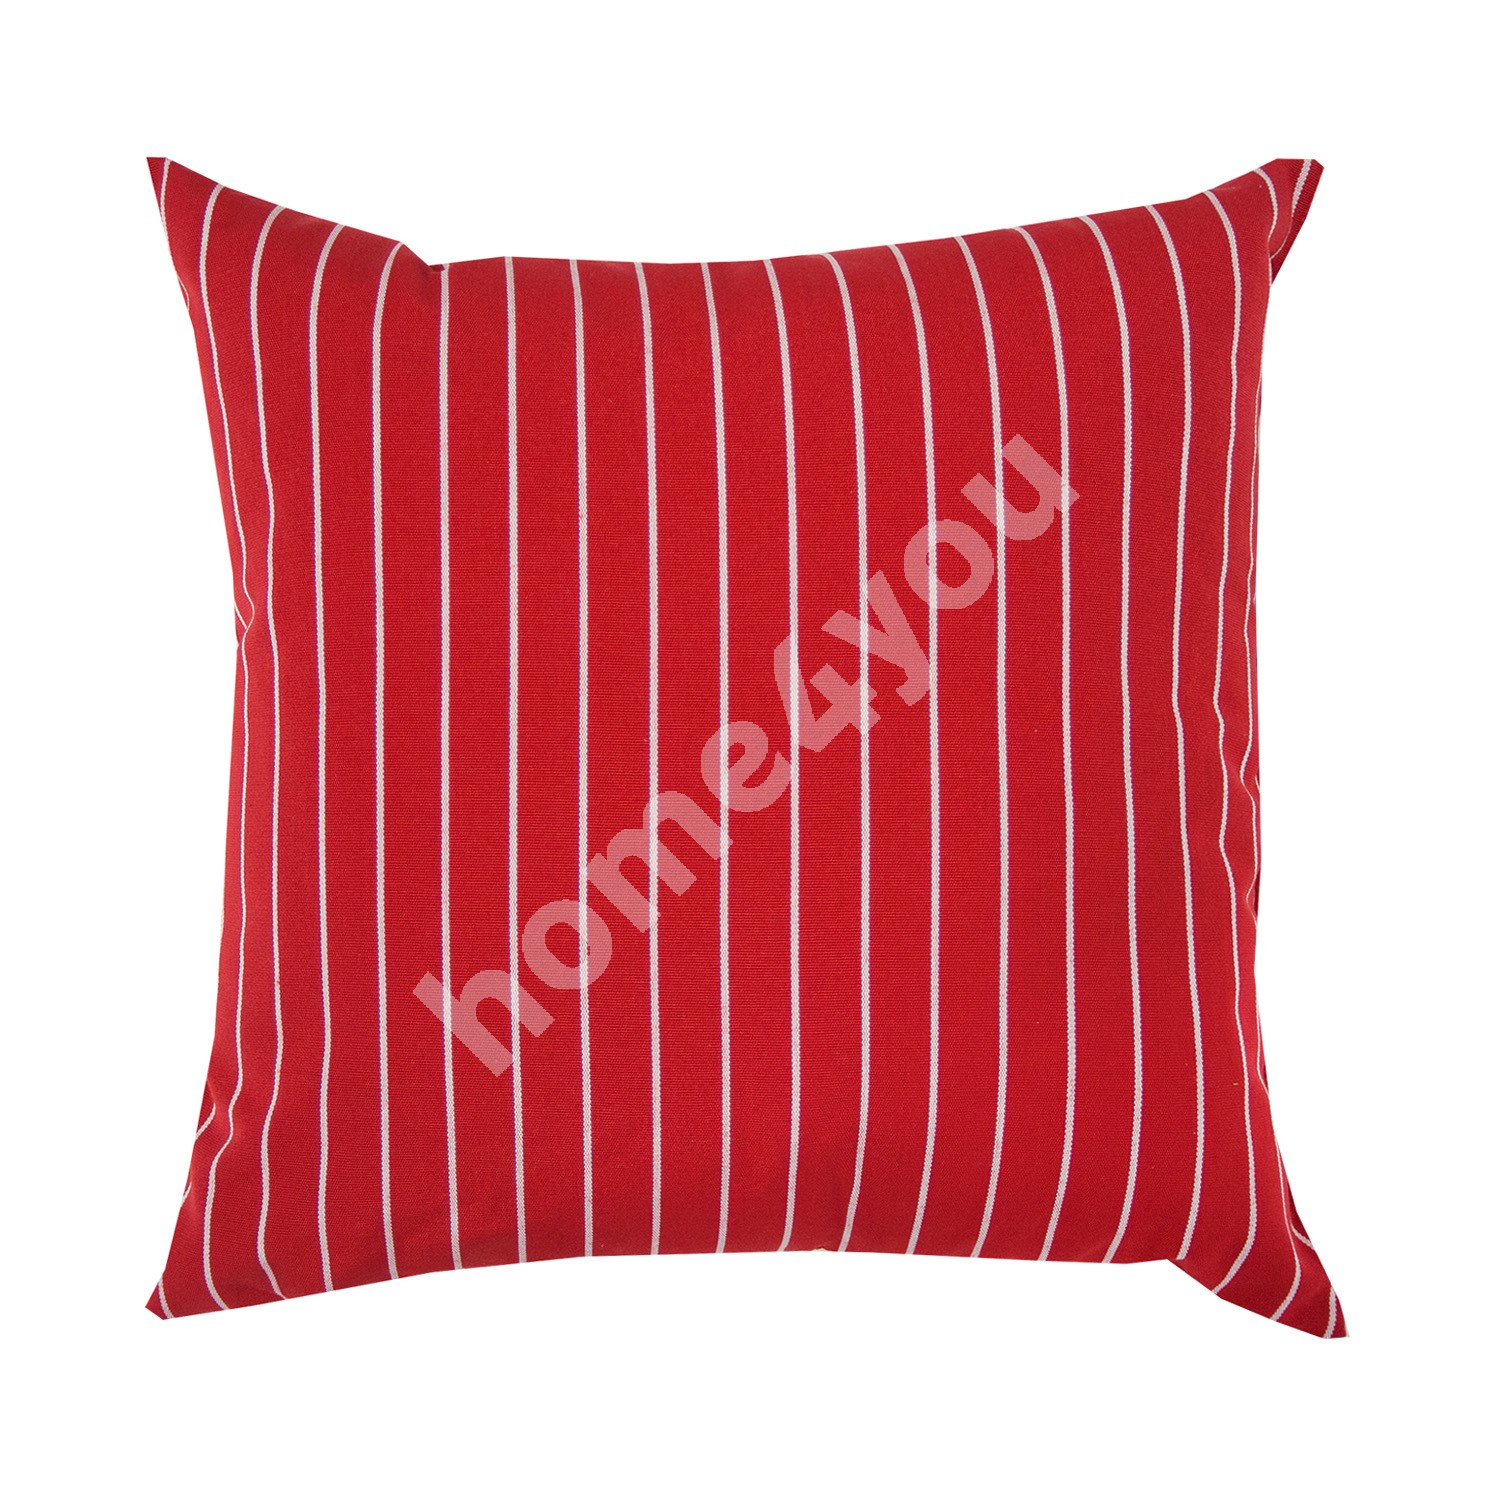 Cushion SUMMER 45x45cm, 100% polyester, fabric 631